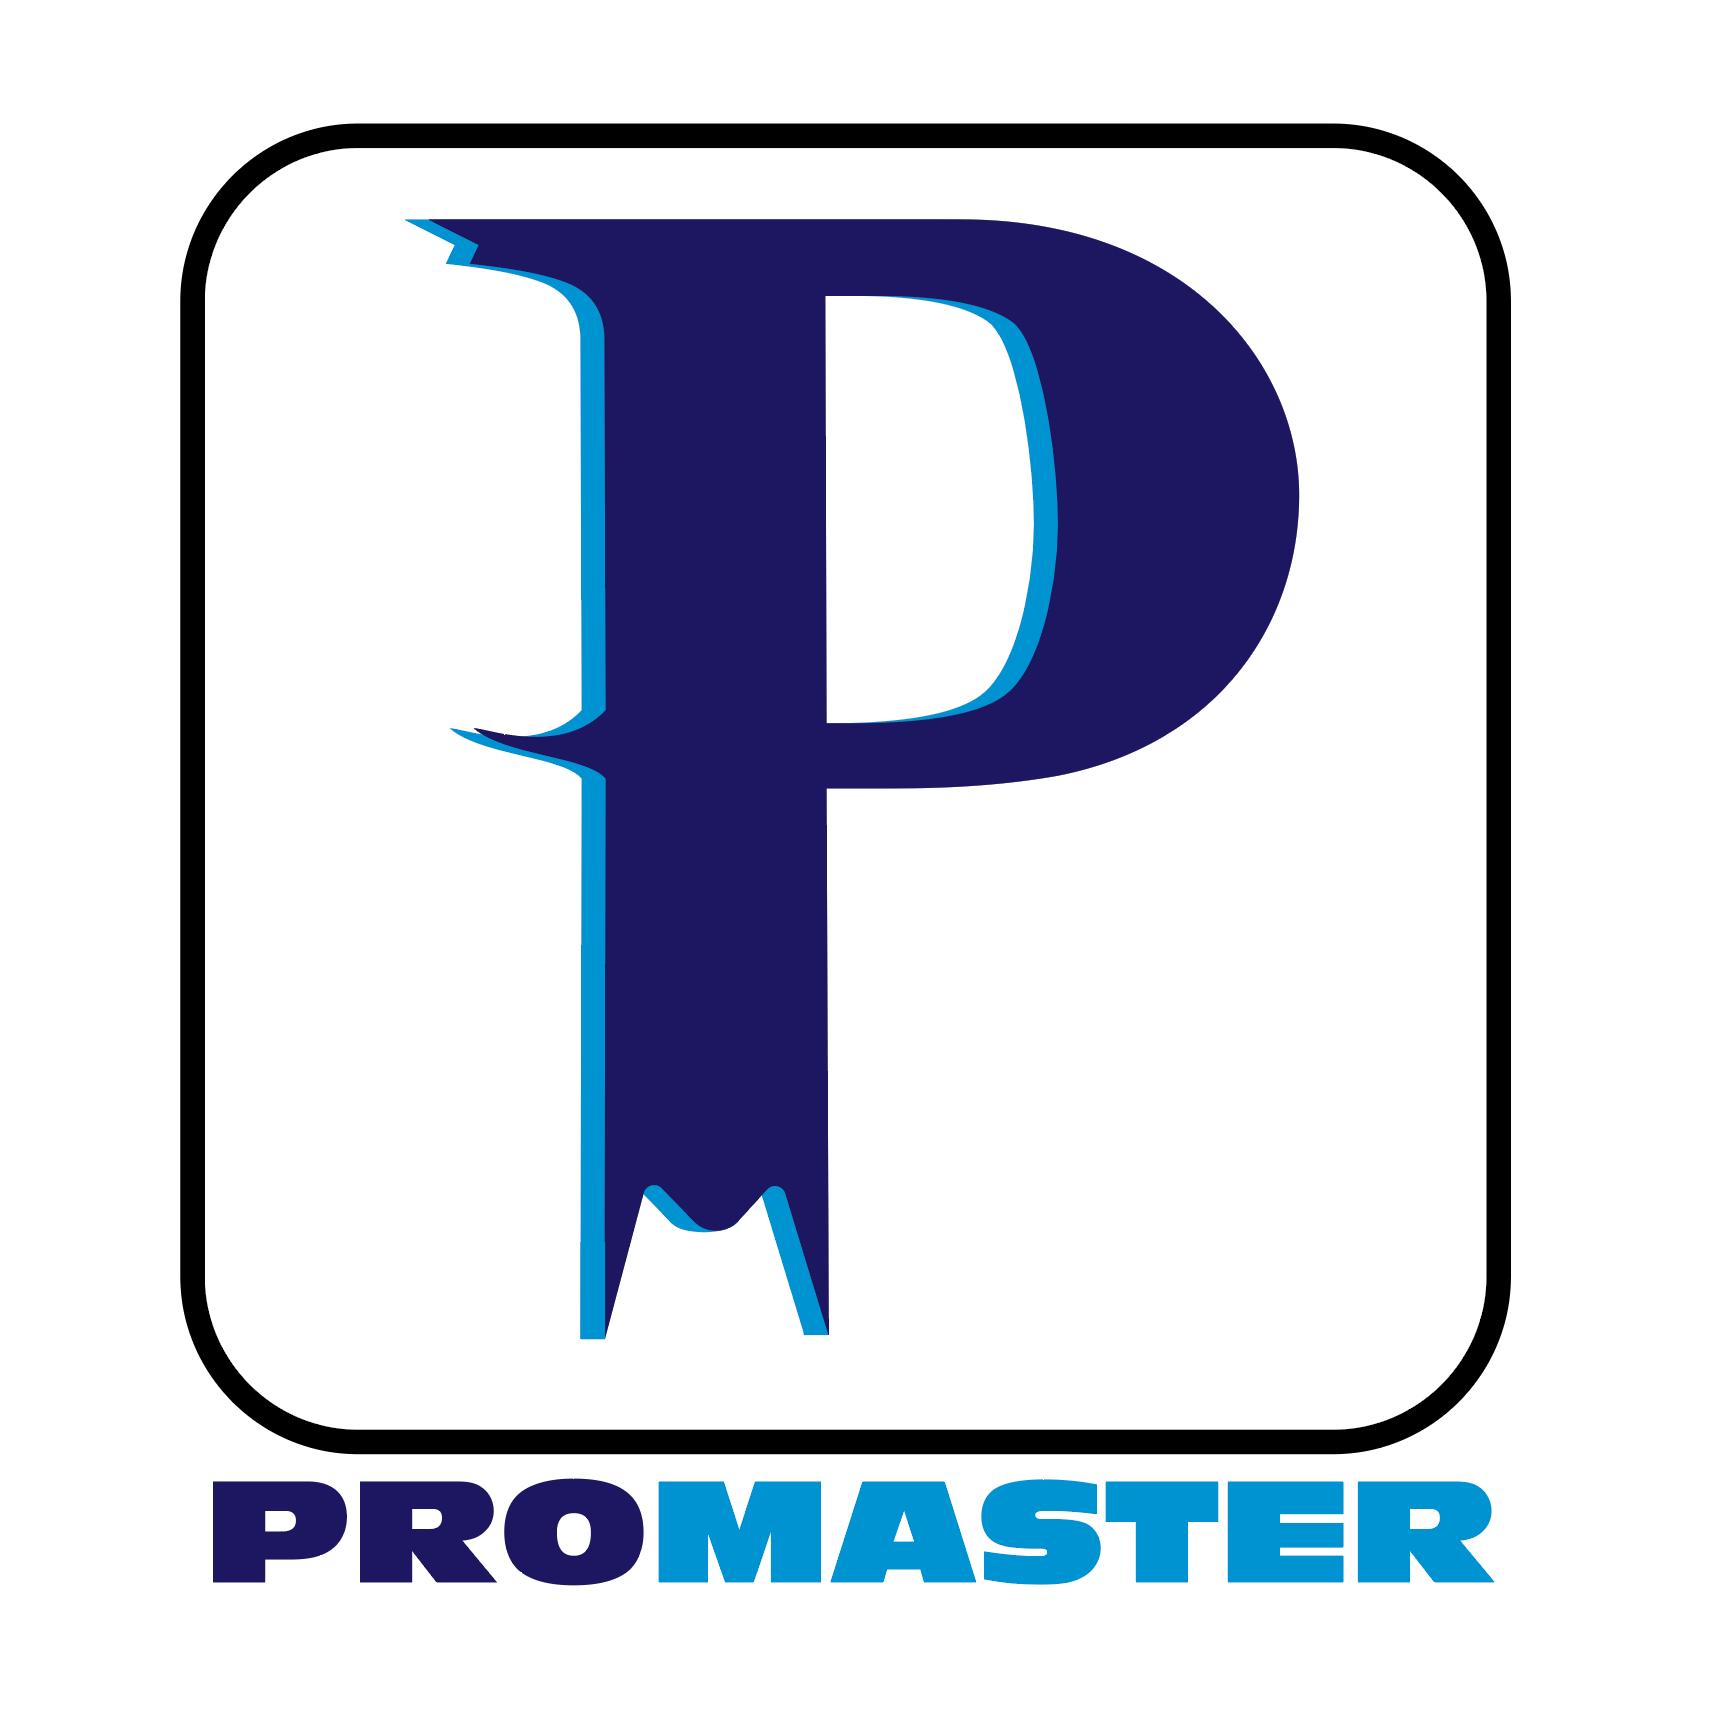 Promaster Air Conditioning